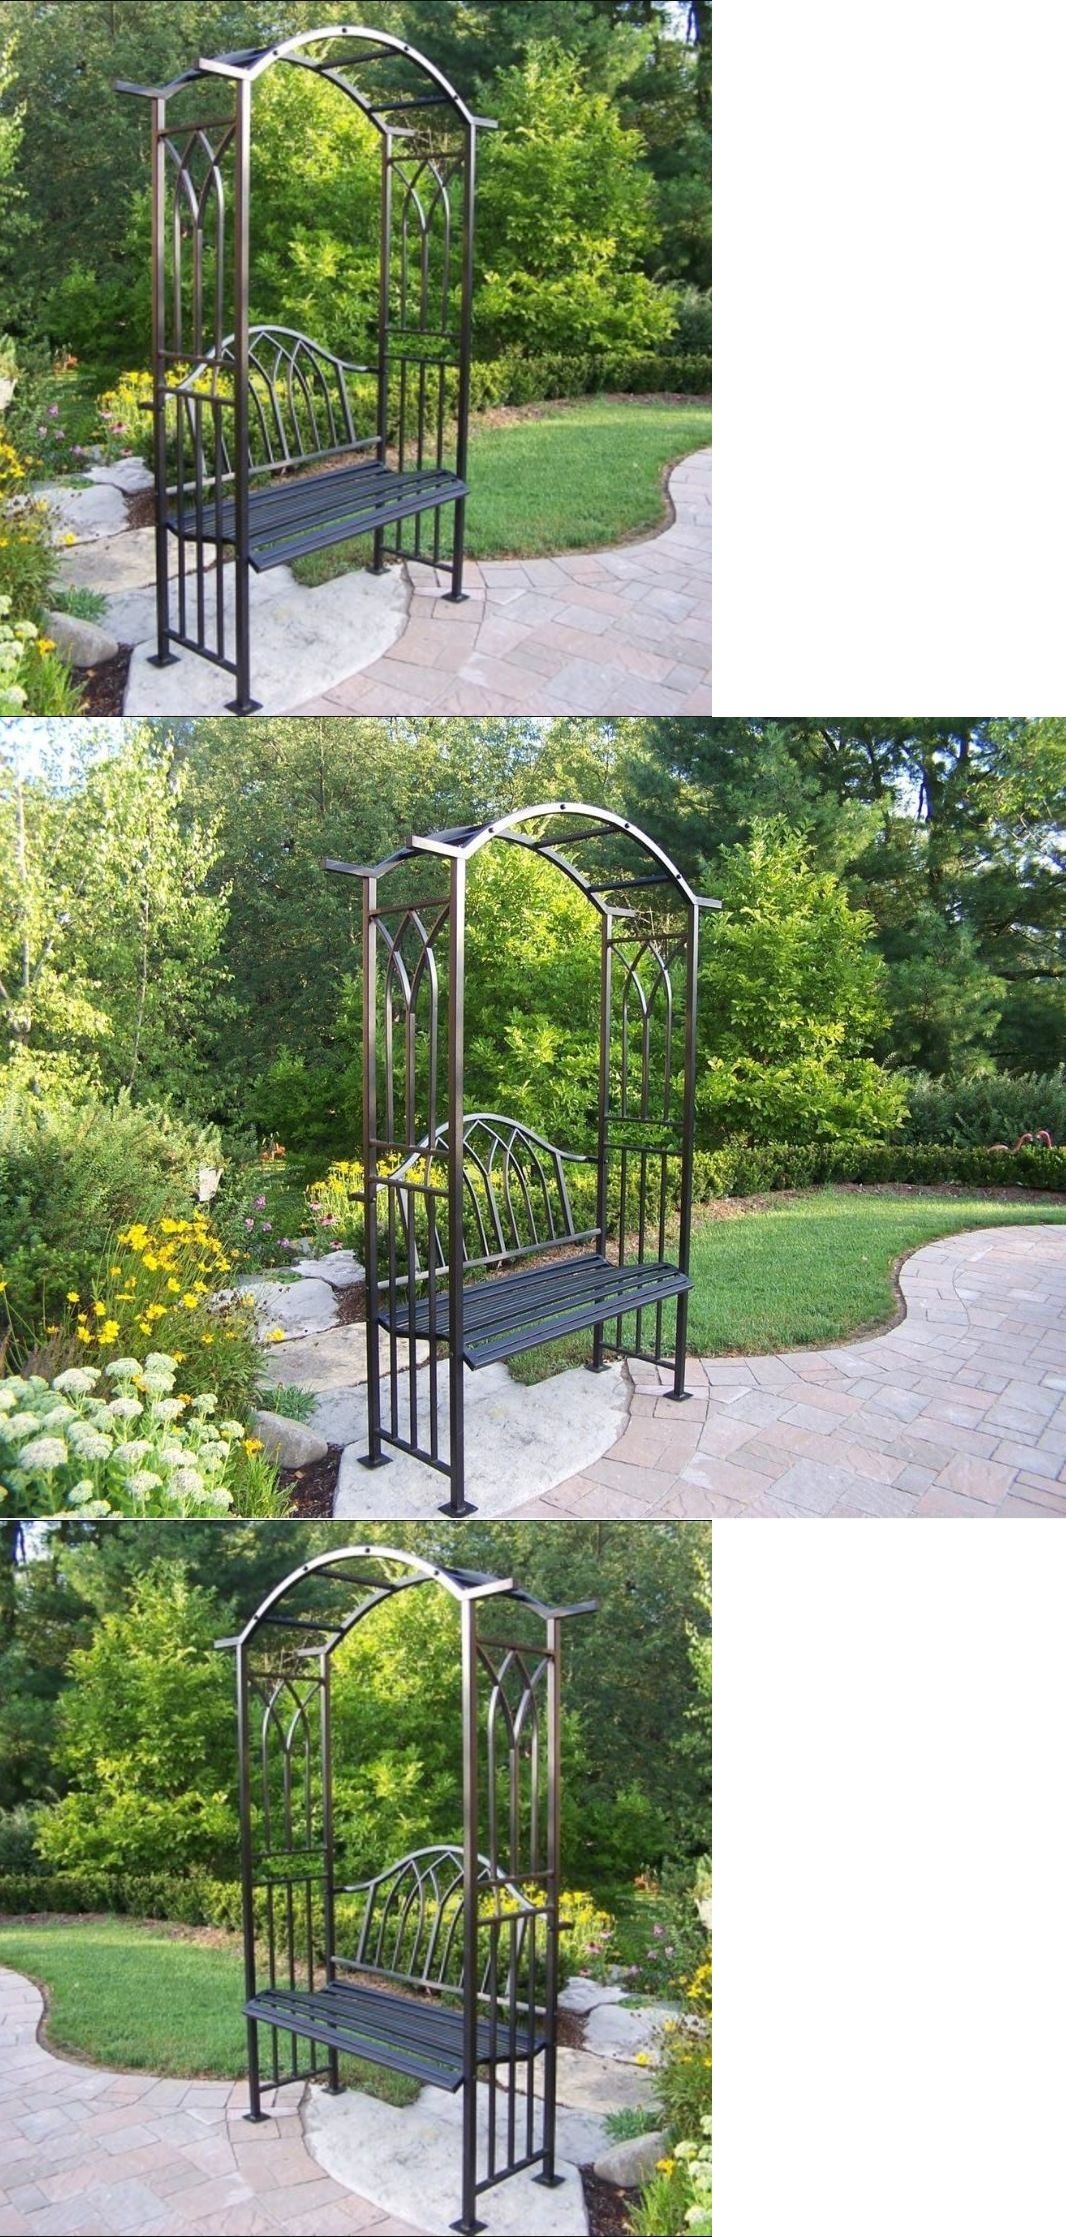 Arbors and Arches 180993: Garden Arches And Arbors Trellis Bench ...